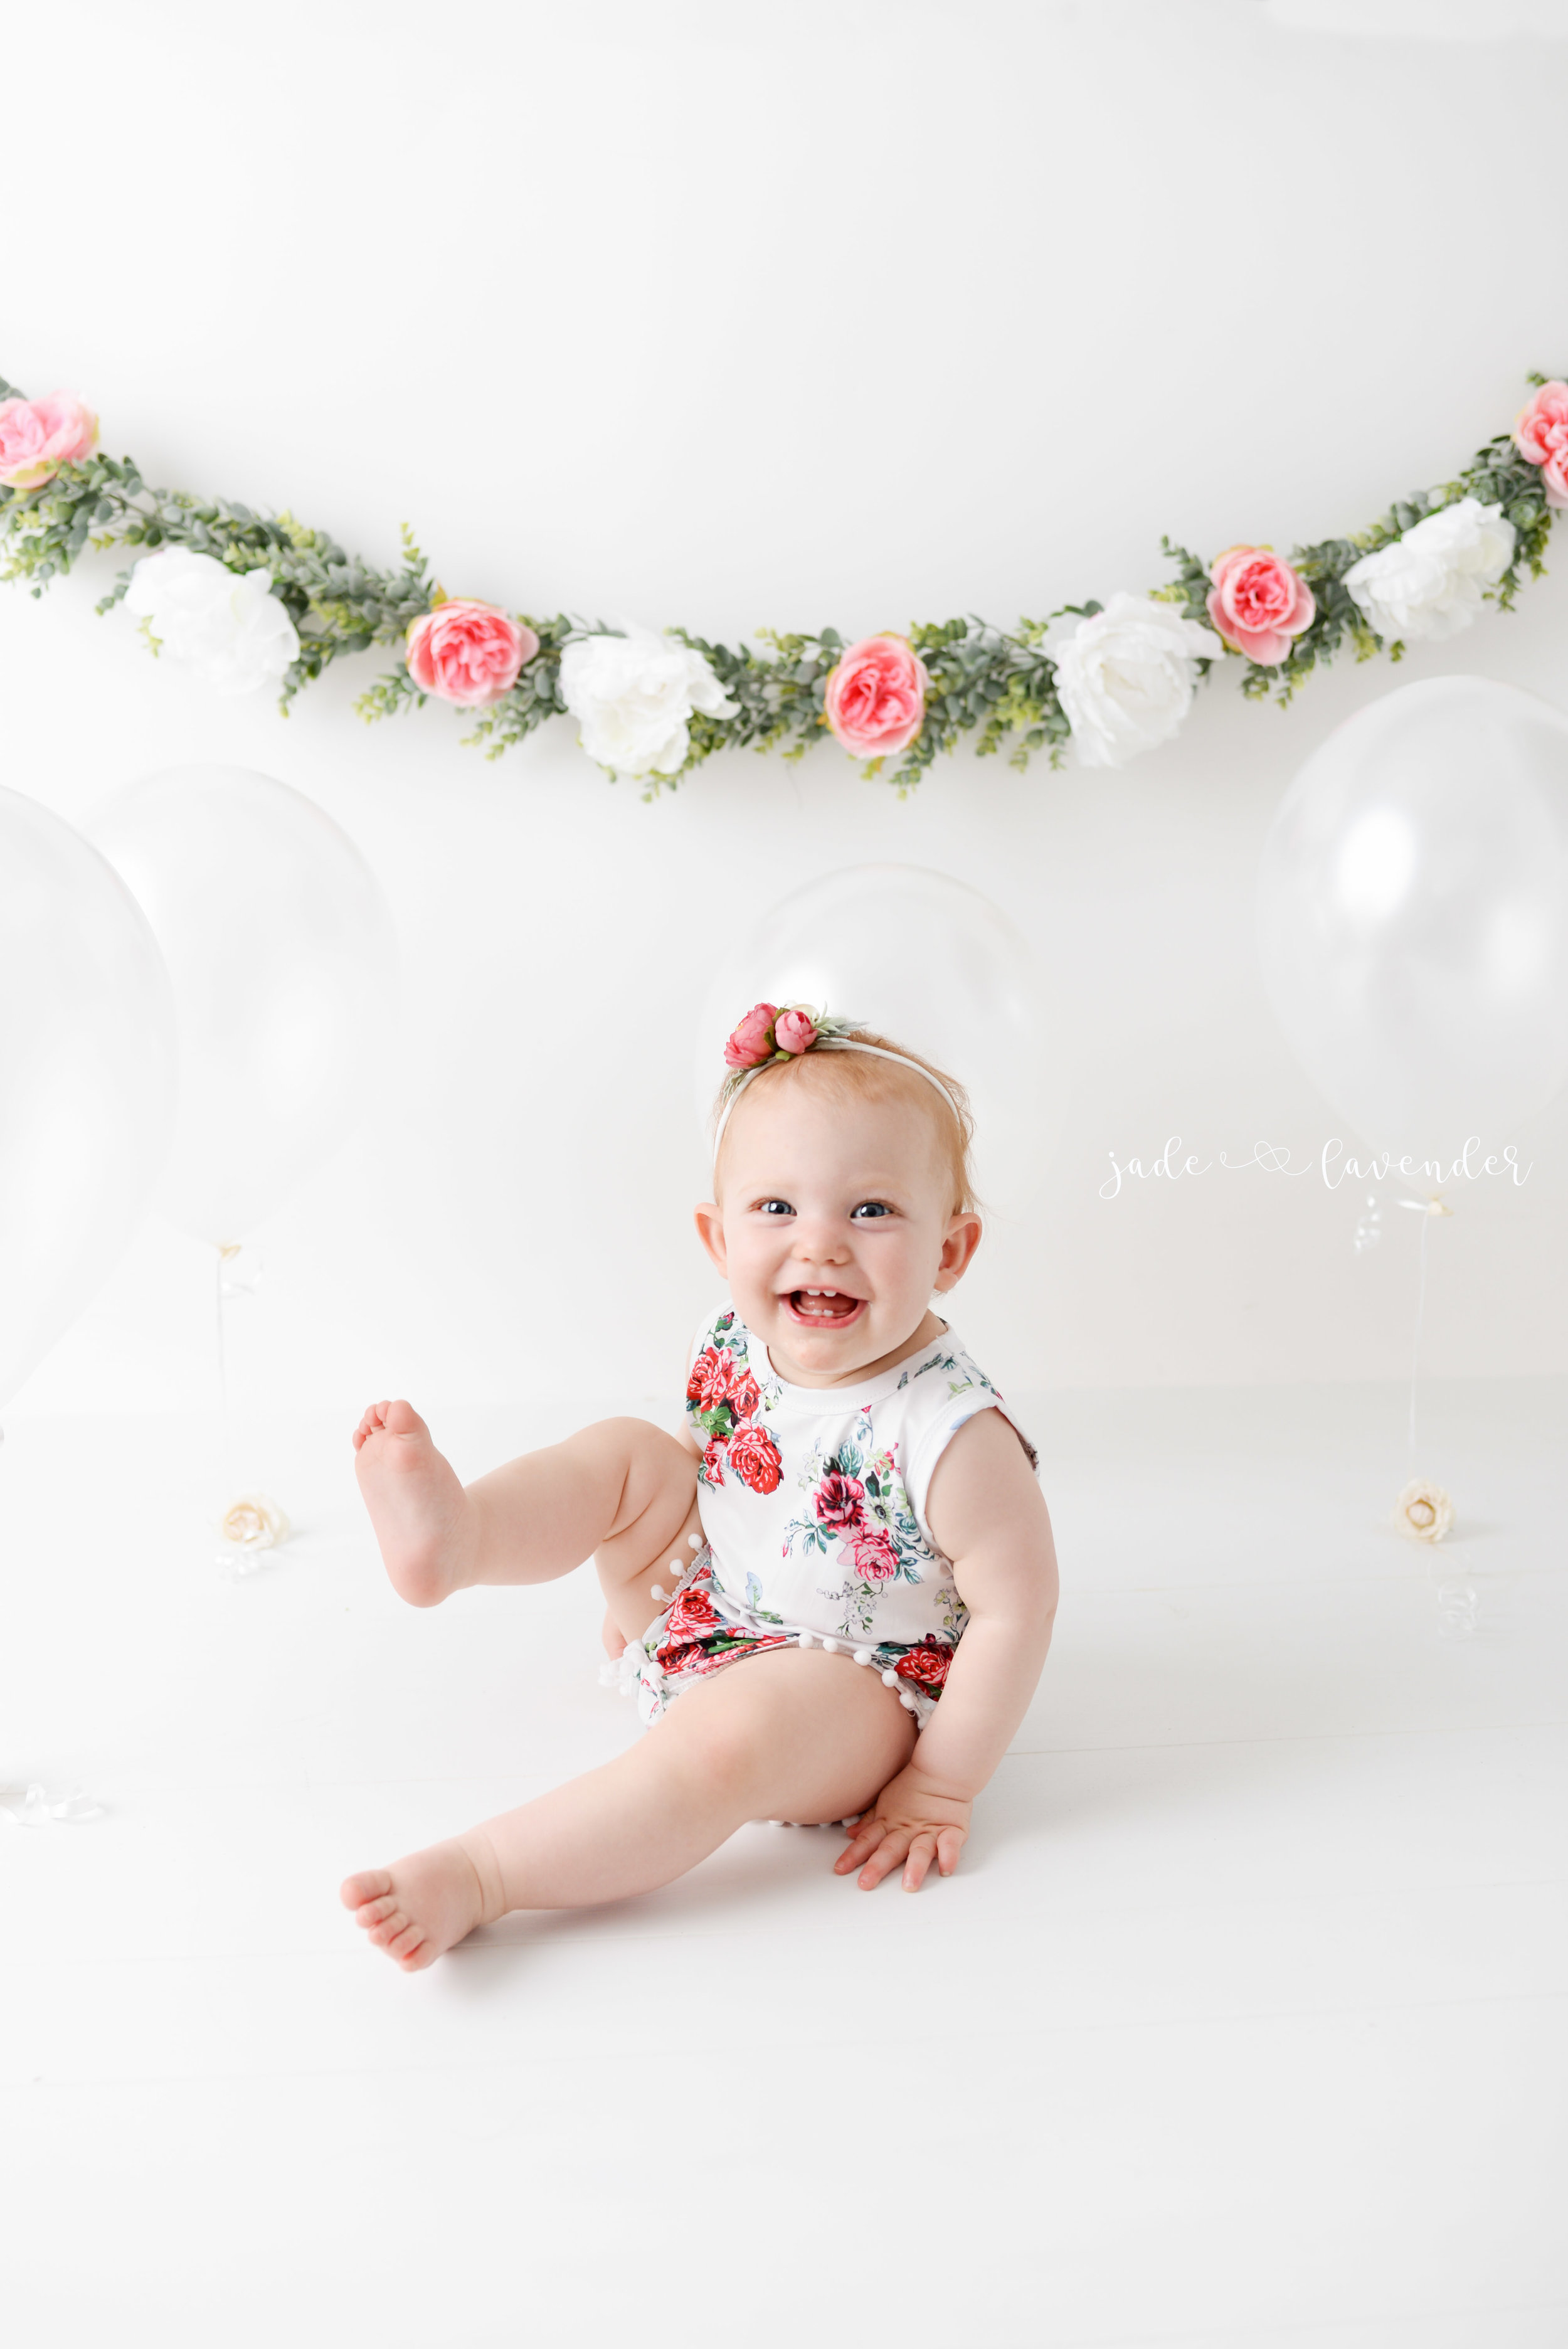 cake-smash-one-year-photos-baby-photography-newborn-infant-images-spokane-washington (1 of 6).jpg